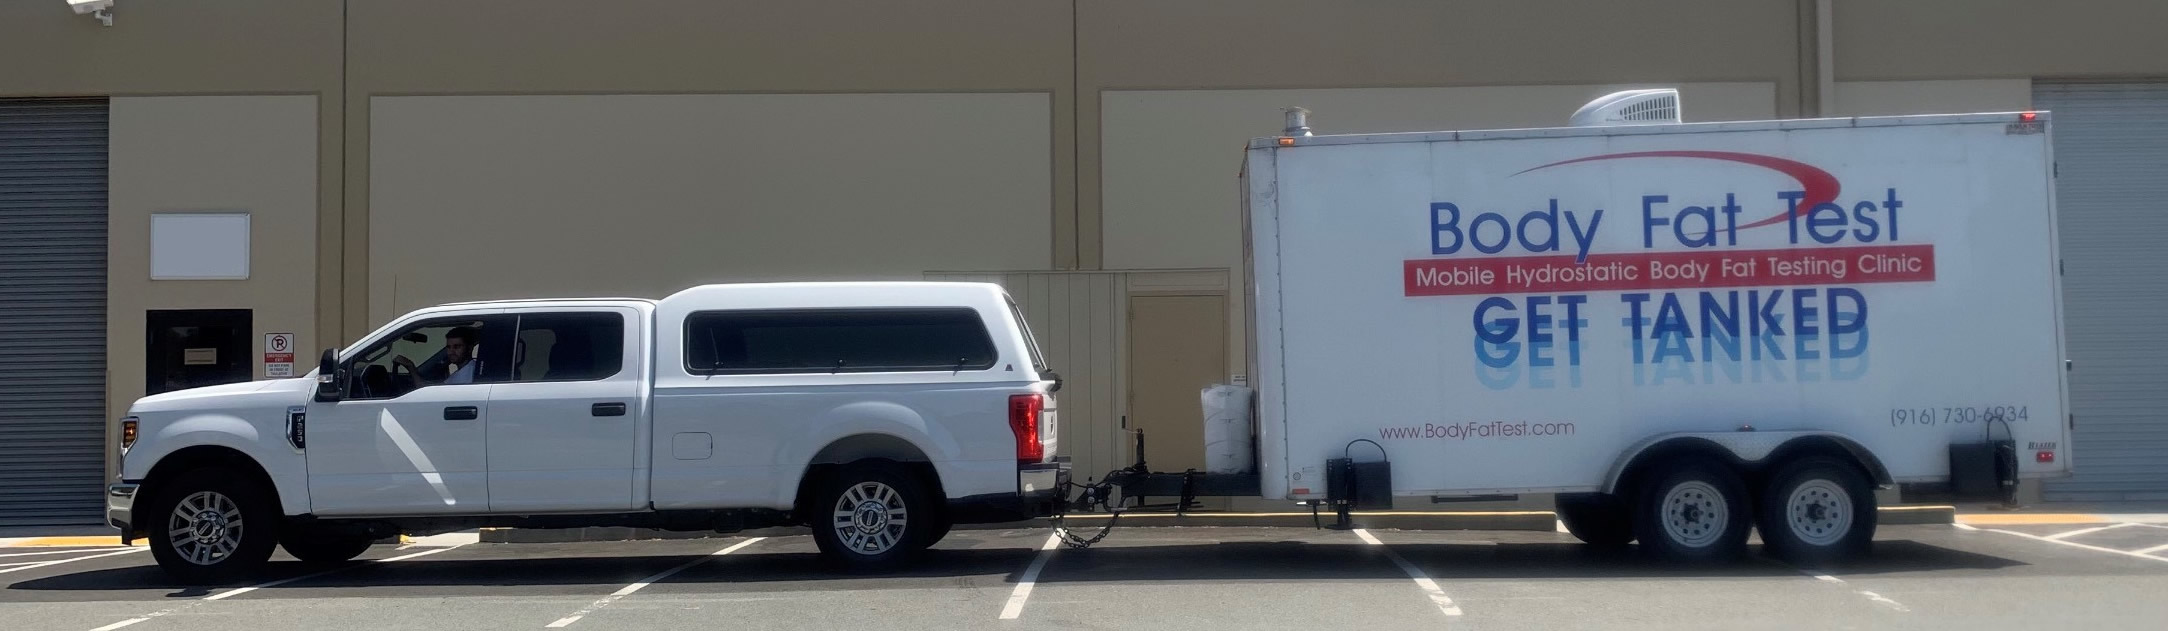 Northern California Body Fat Test Truck